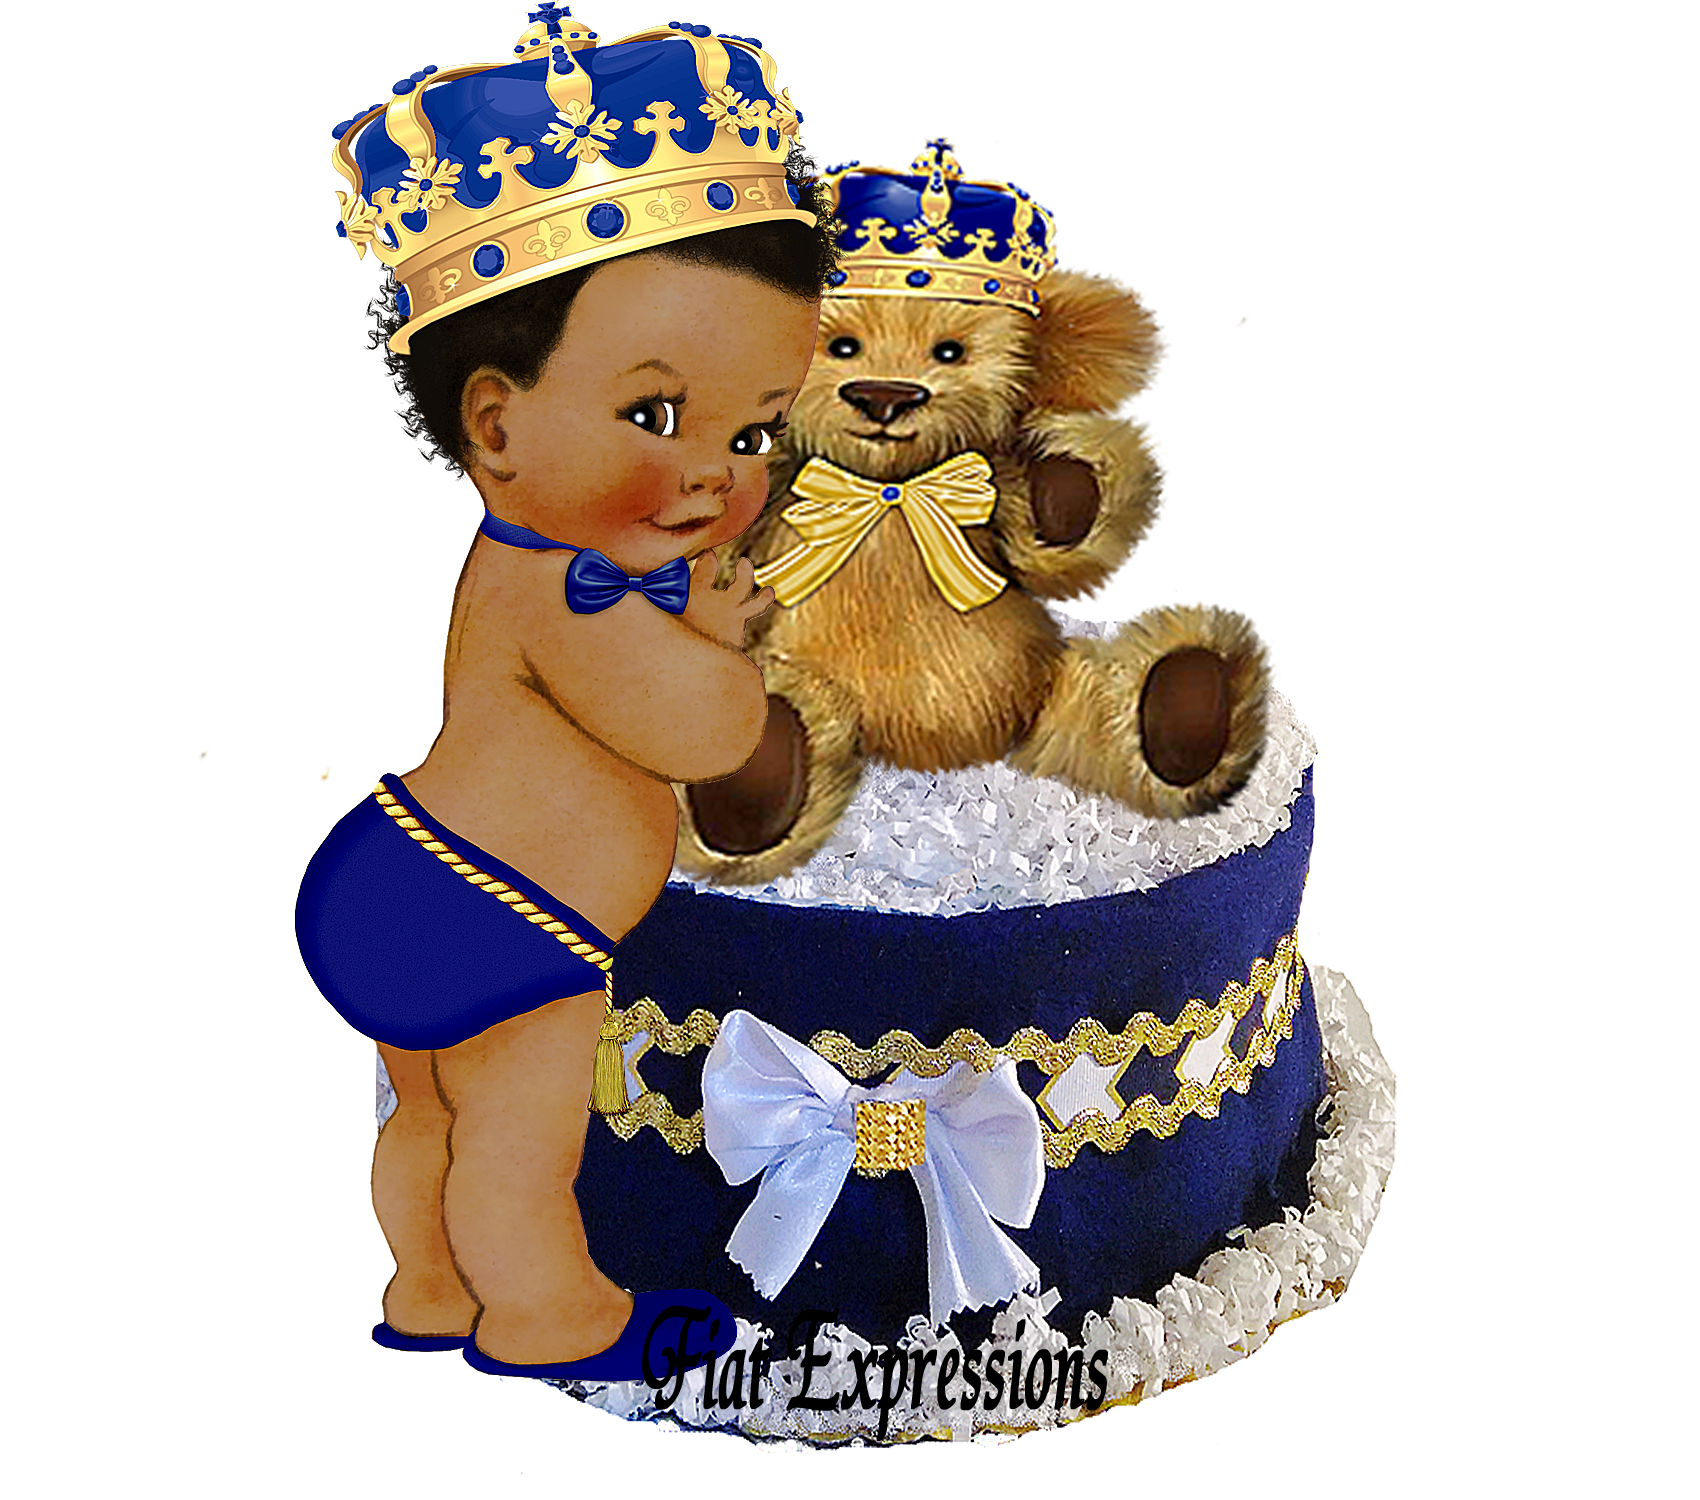 50* Personalized Prince Baby Shower Mirror Bear Table Centerpiece Decoration Custom Princess 1th Birthday Party Favor Gift Confetti Decor